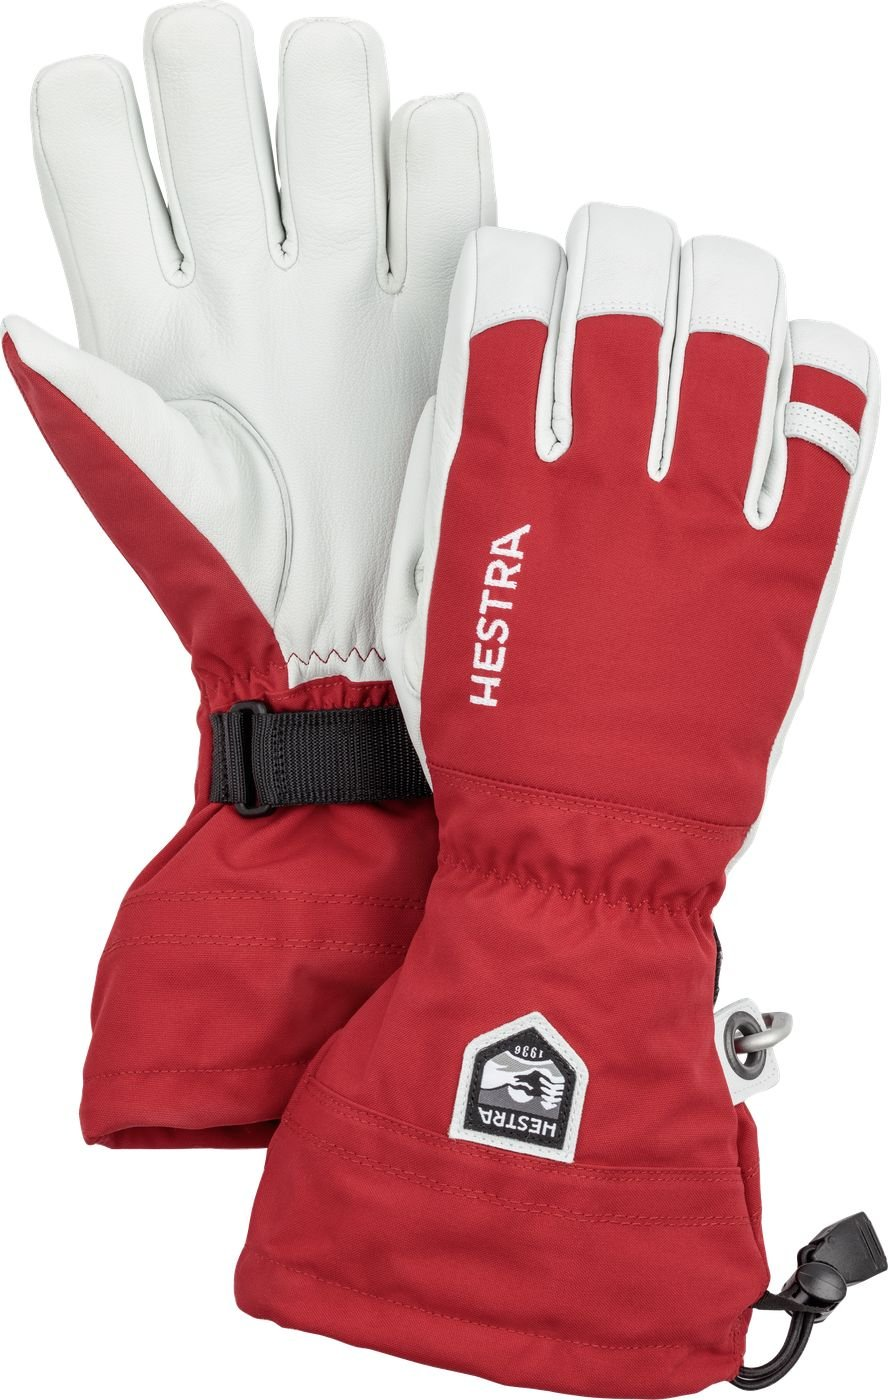 Hestra Army Leather Heli Ski and Ride Glove with Gauntlet 30570